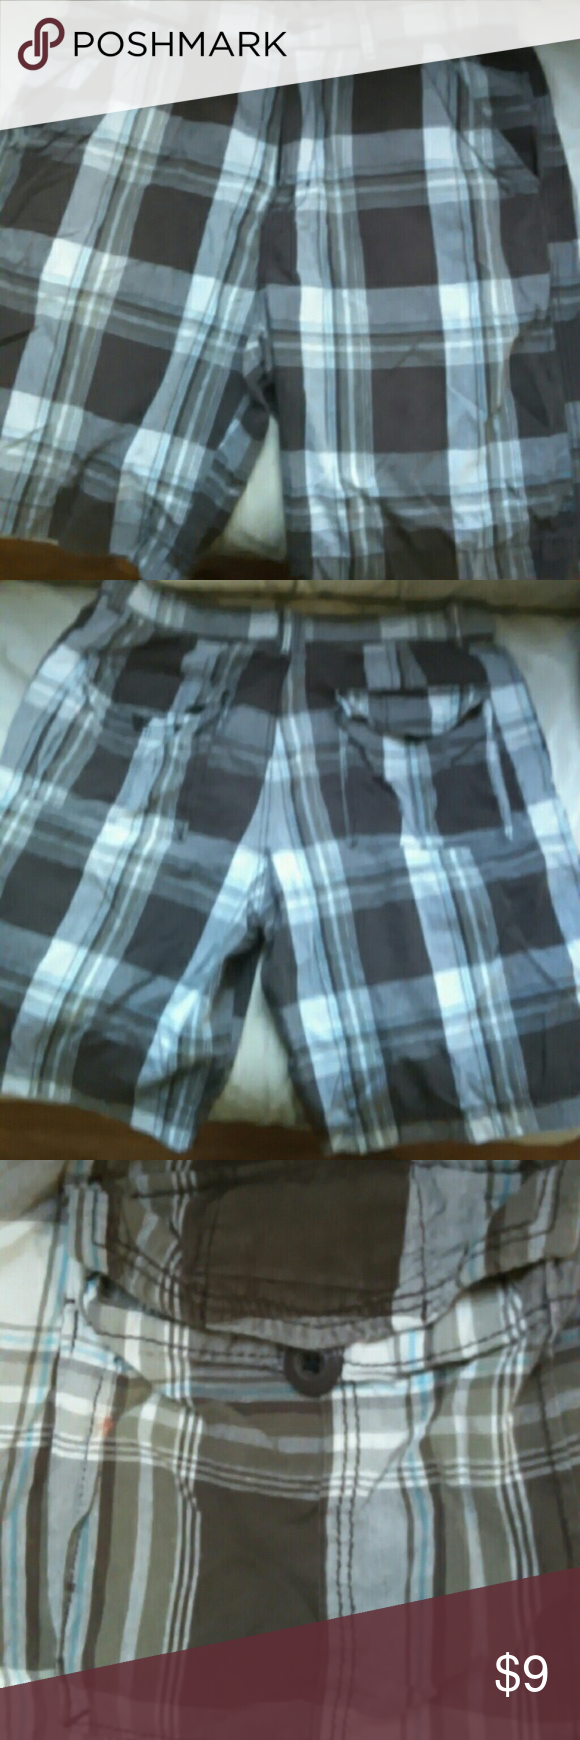 Men's plaid shorts size 34 These sorts are mostly brown and white with one blue line in the plaid. Tiny bleach spot near back pocket in picture. Bundle two or more items and save $15! UNIONBAY Shorts Flat Front